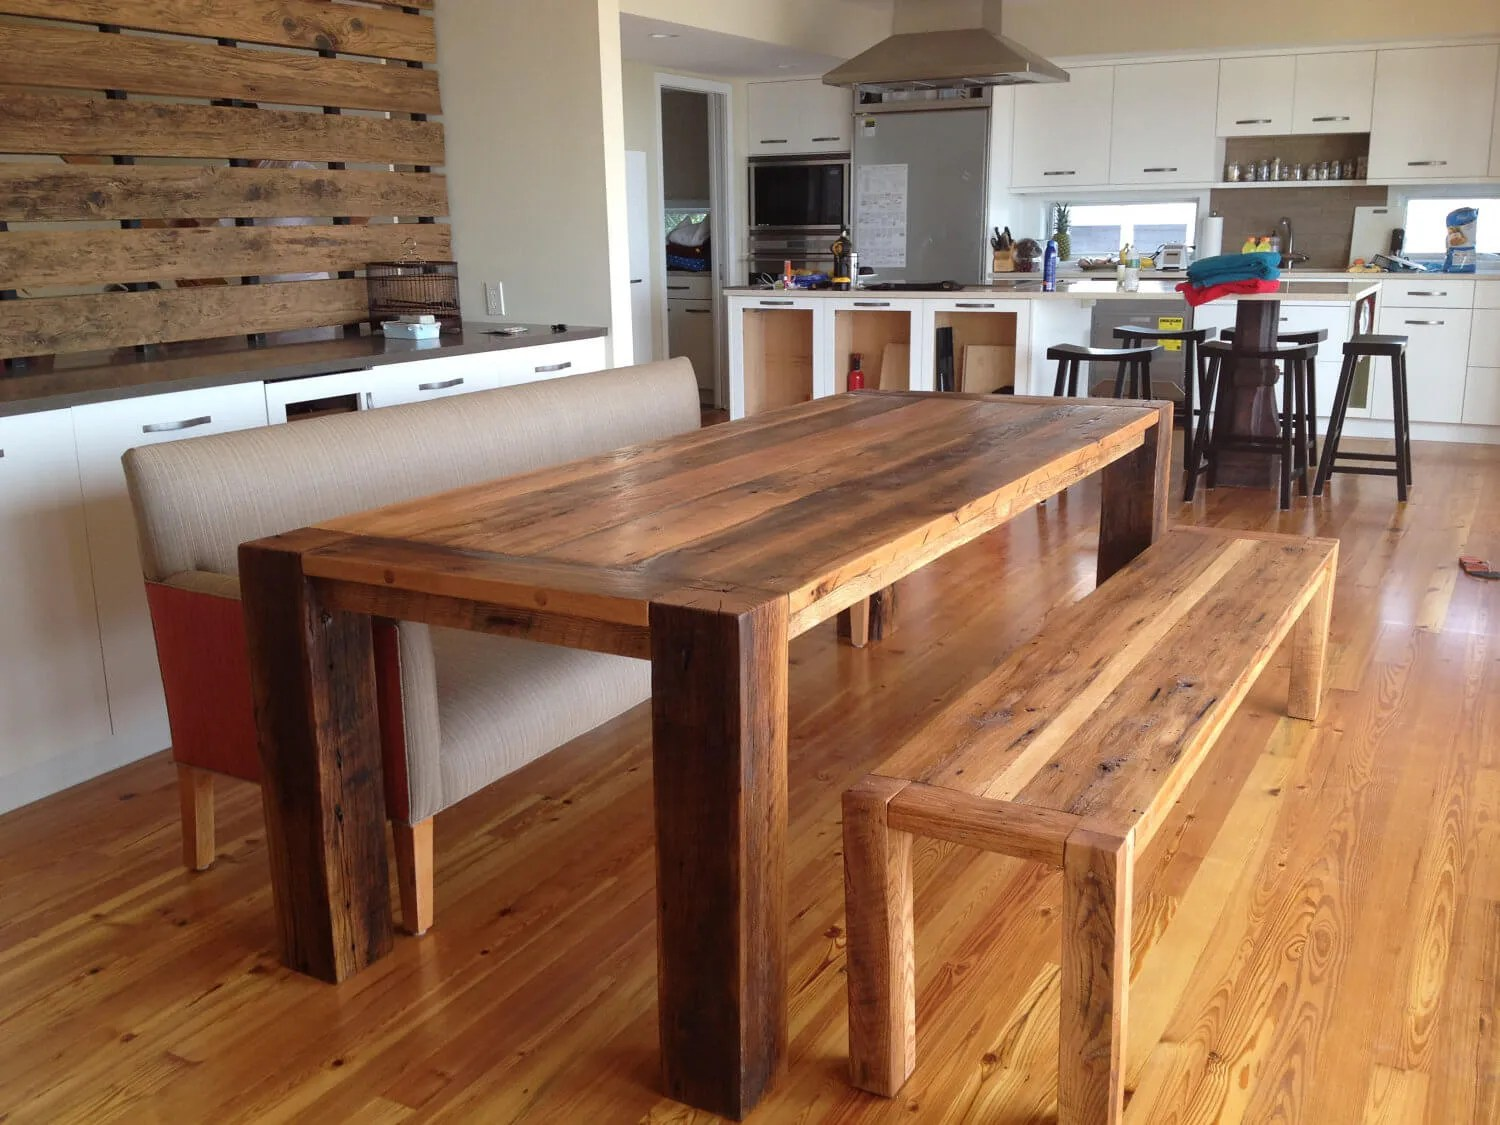 Splendid Reclaimed Wood Table Reclaimed Wood Tables To Make Your Home Feel More Reclaimed Wood Table Diy Reclaimed Wood Table Base houzz-03 Reclaimed Wood Dining Table